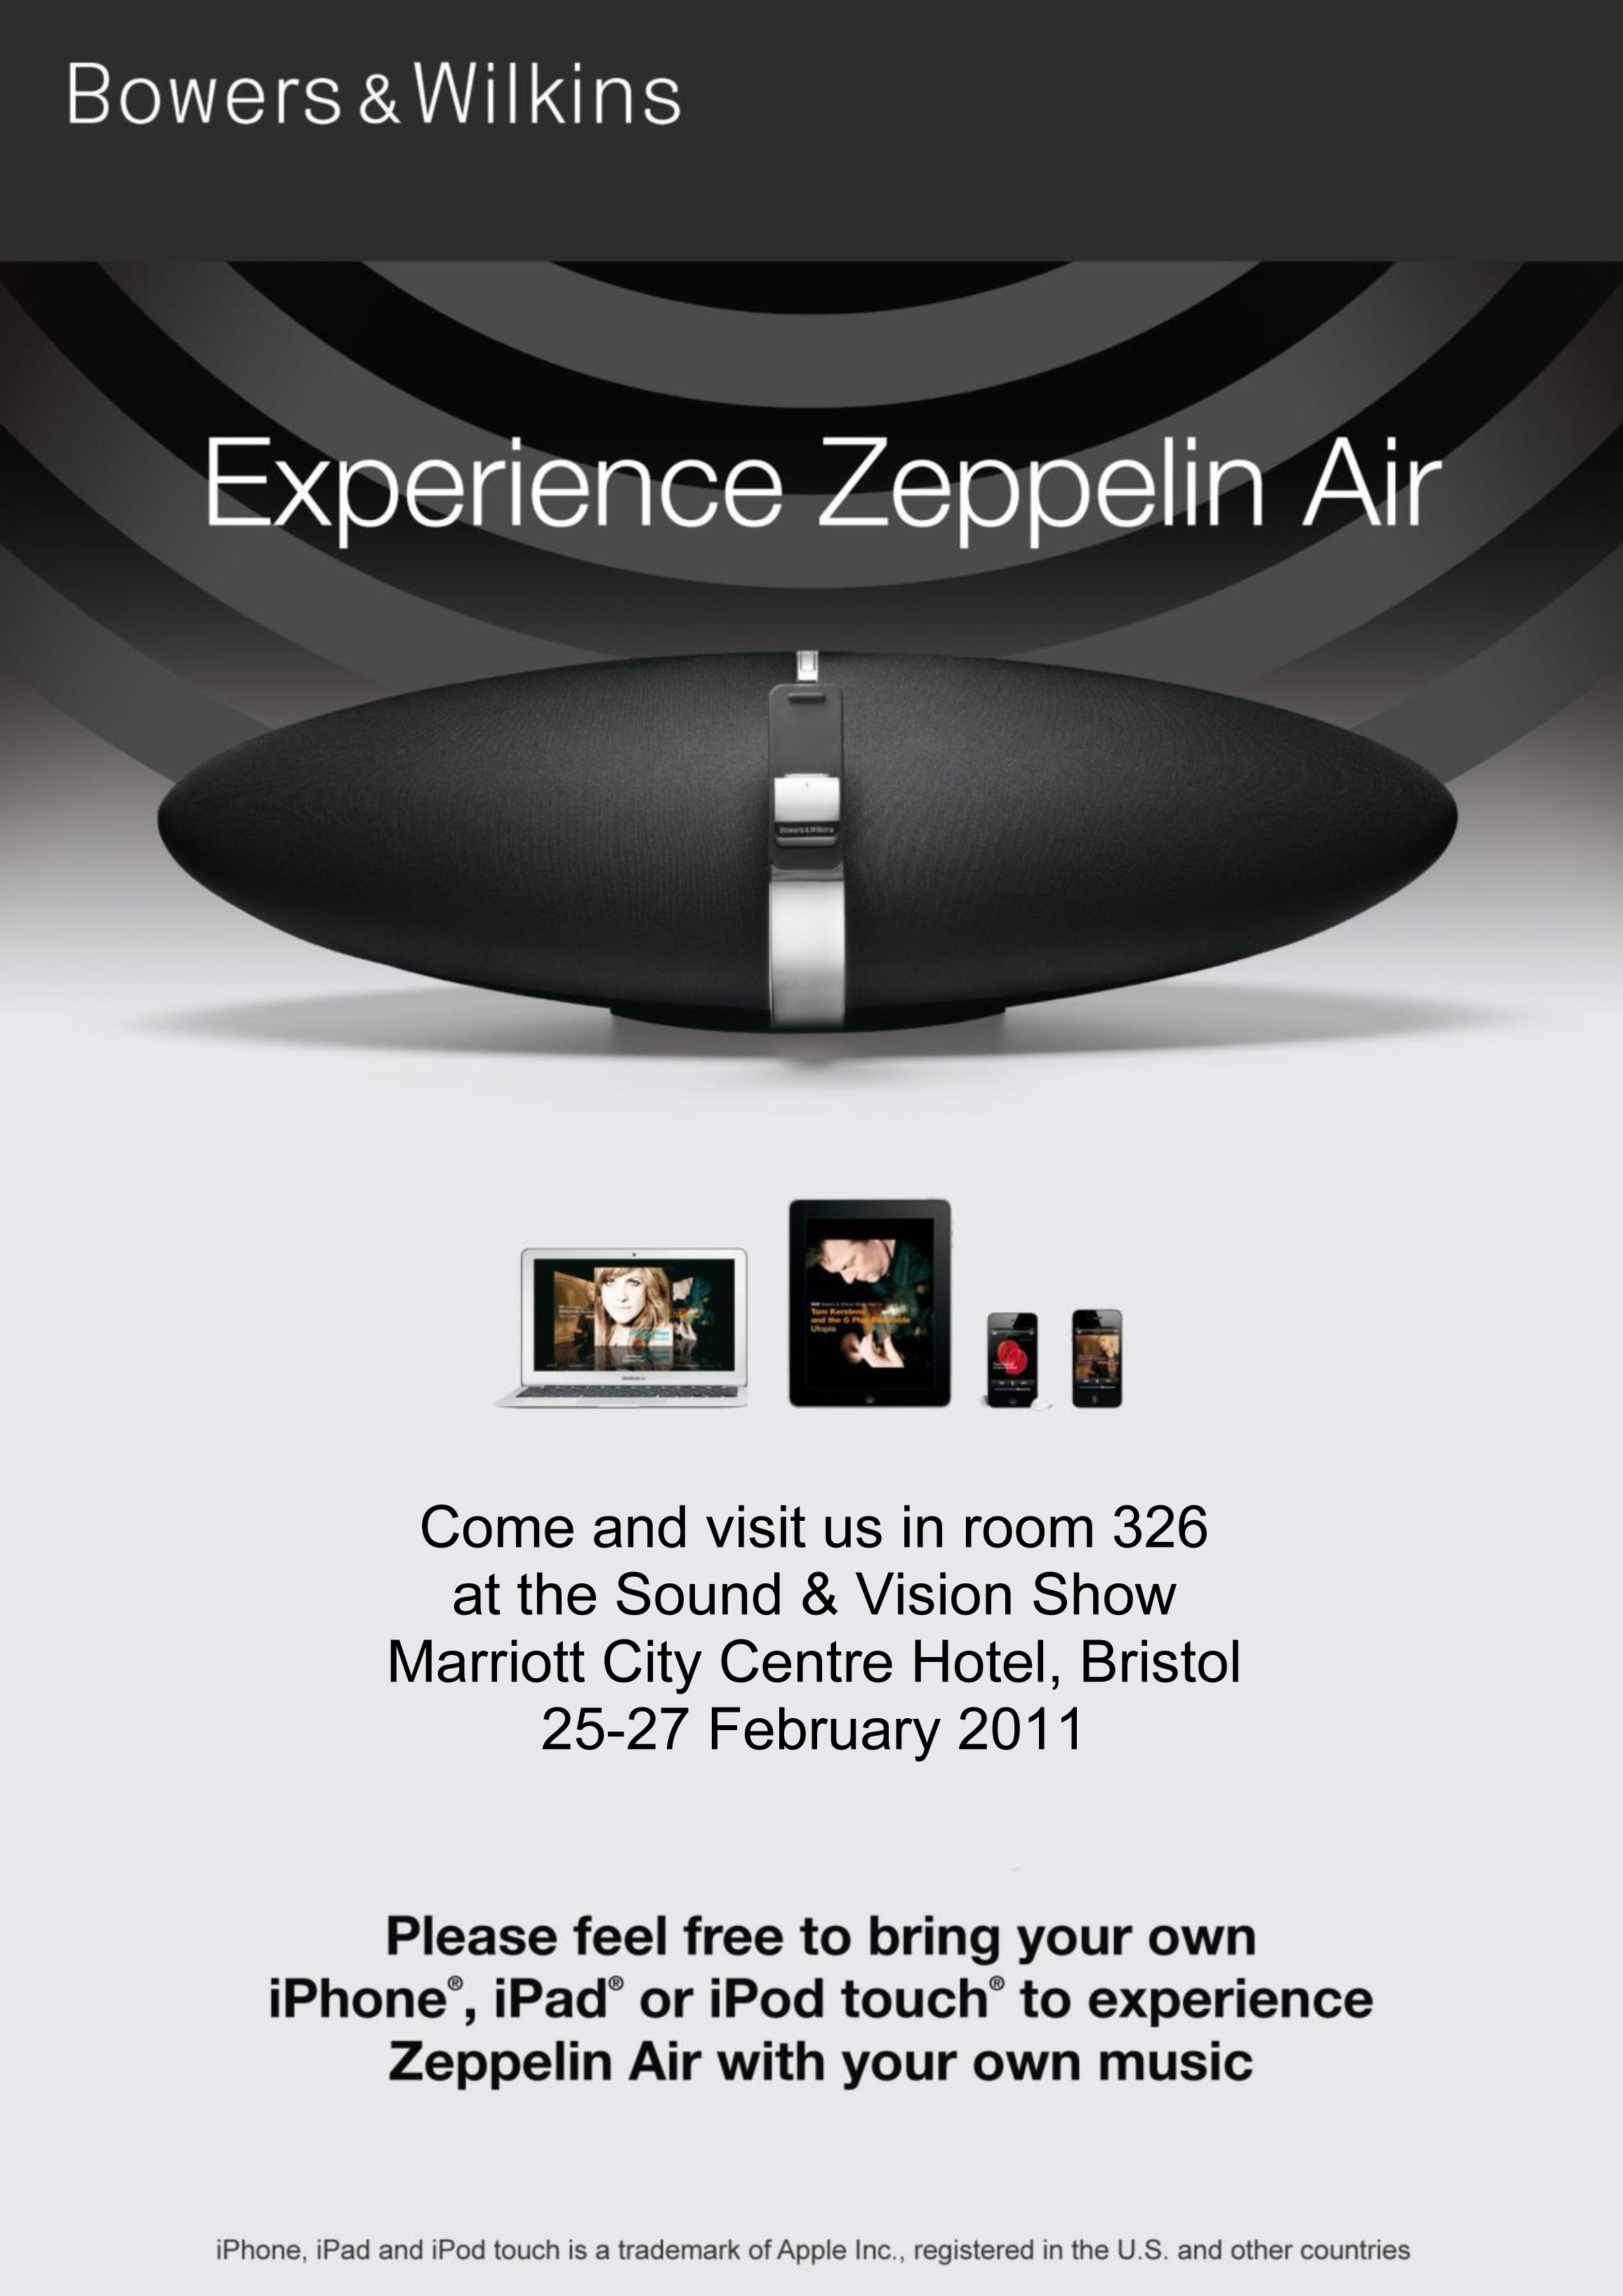 Experience Zeppelin Air at the Sound & Vision Show